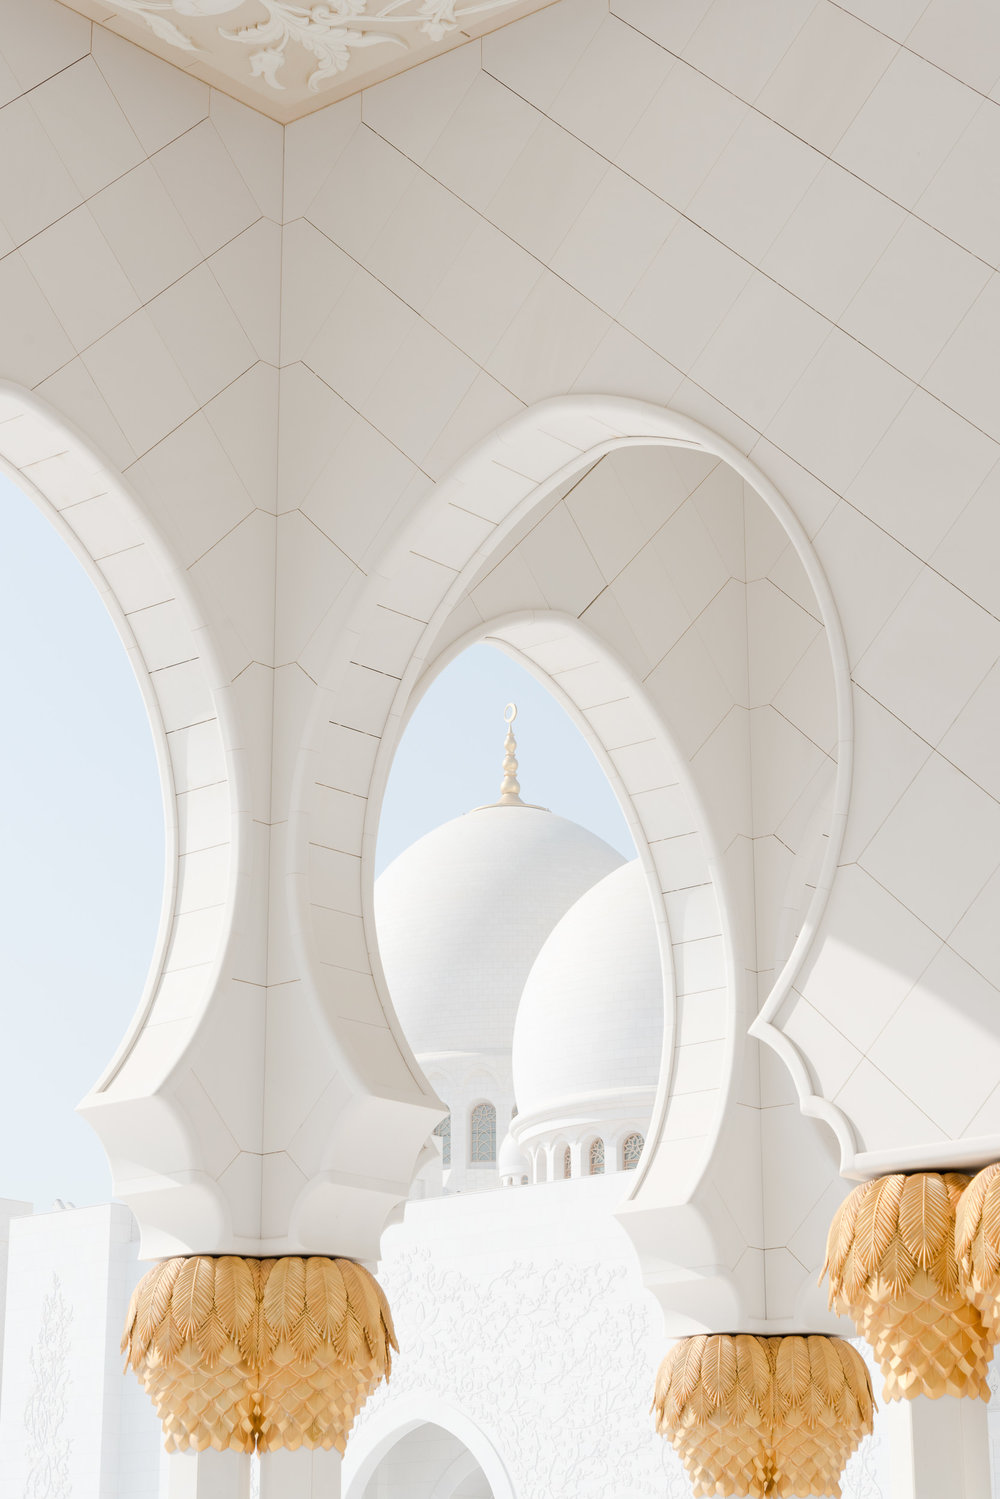 the_getaway_edit_abu_dhabi_sheikh_zayed_grand_mosque-5.jpg